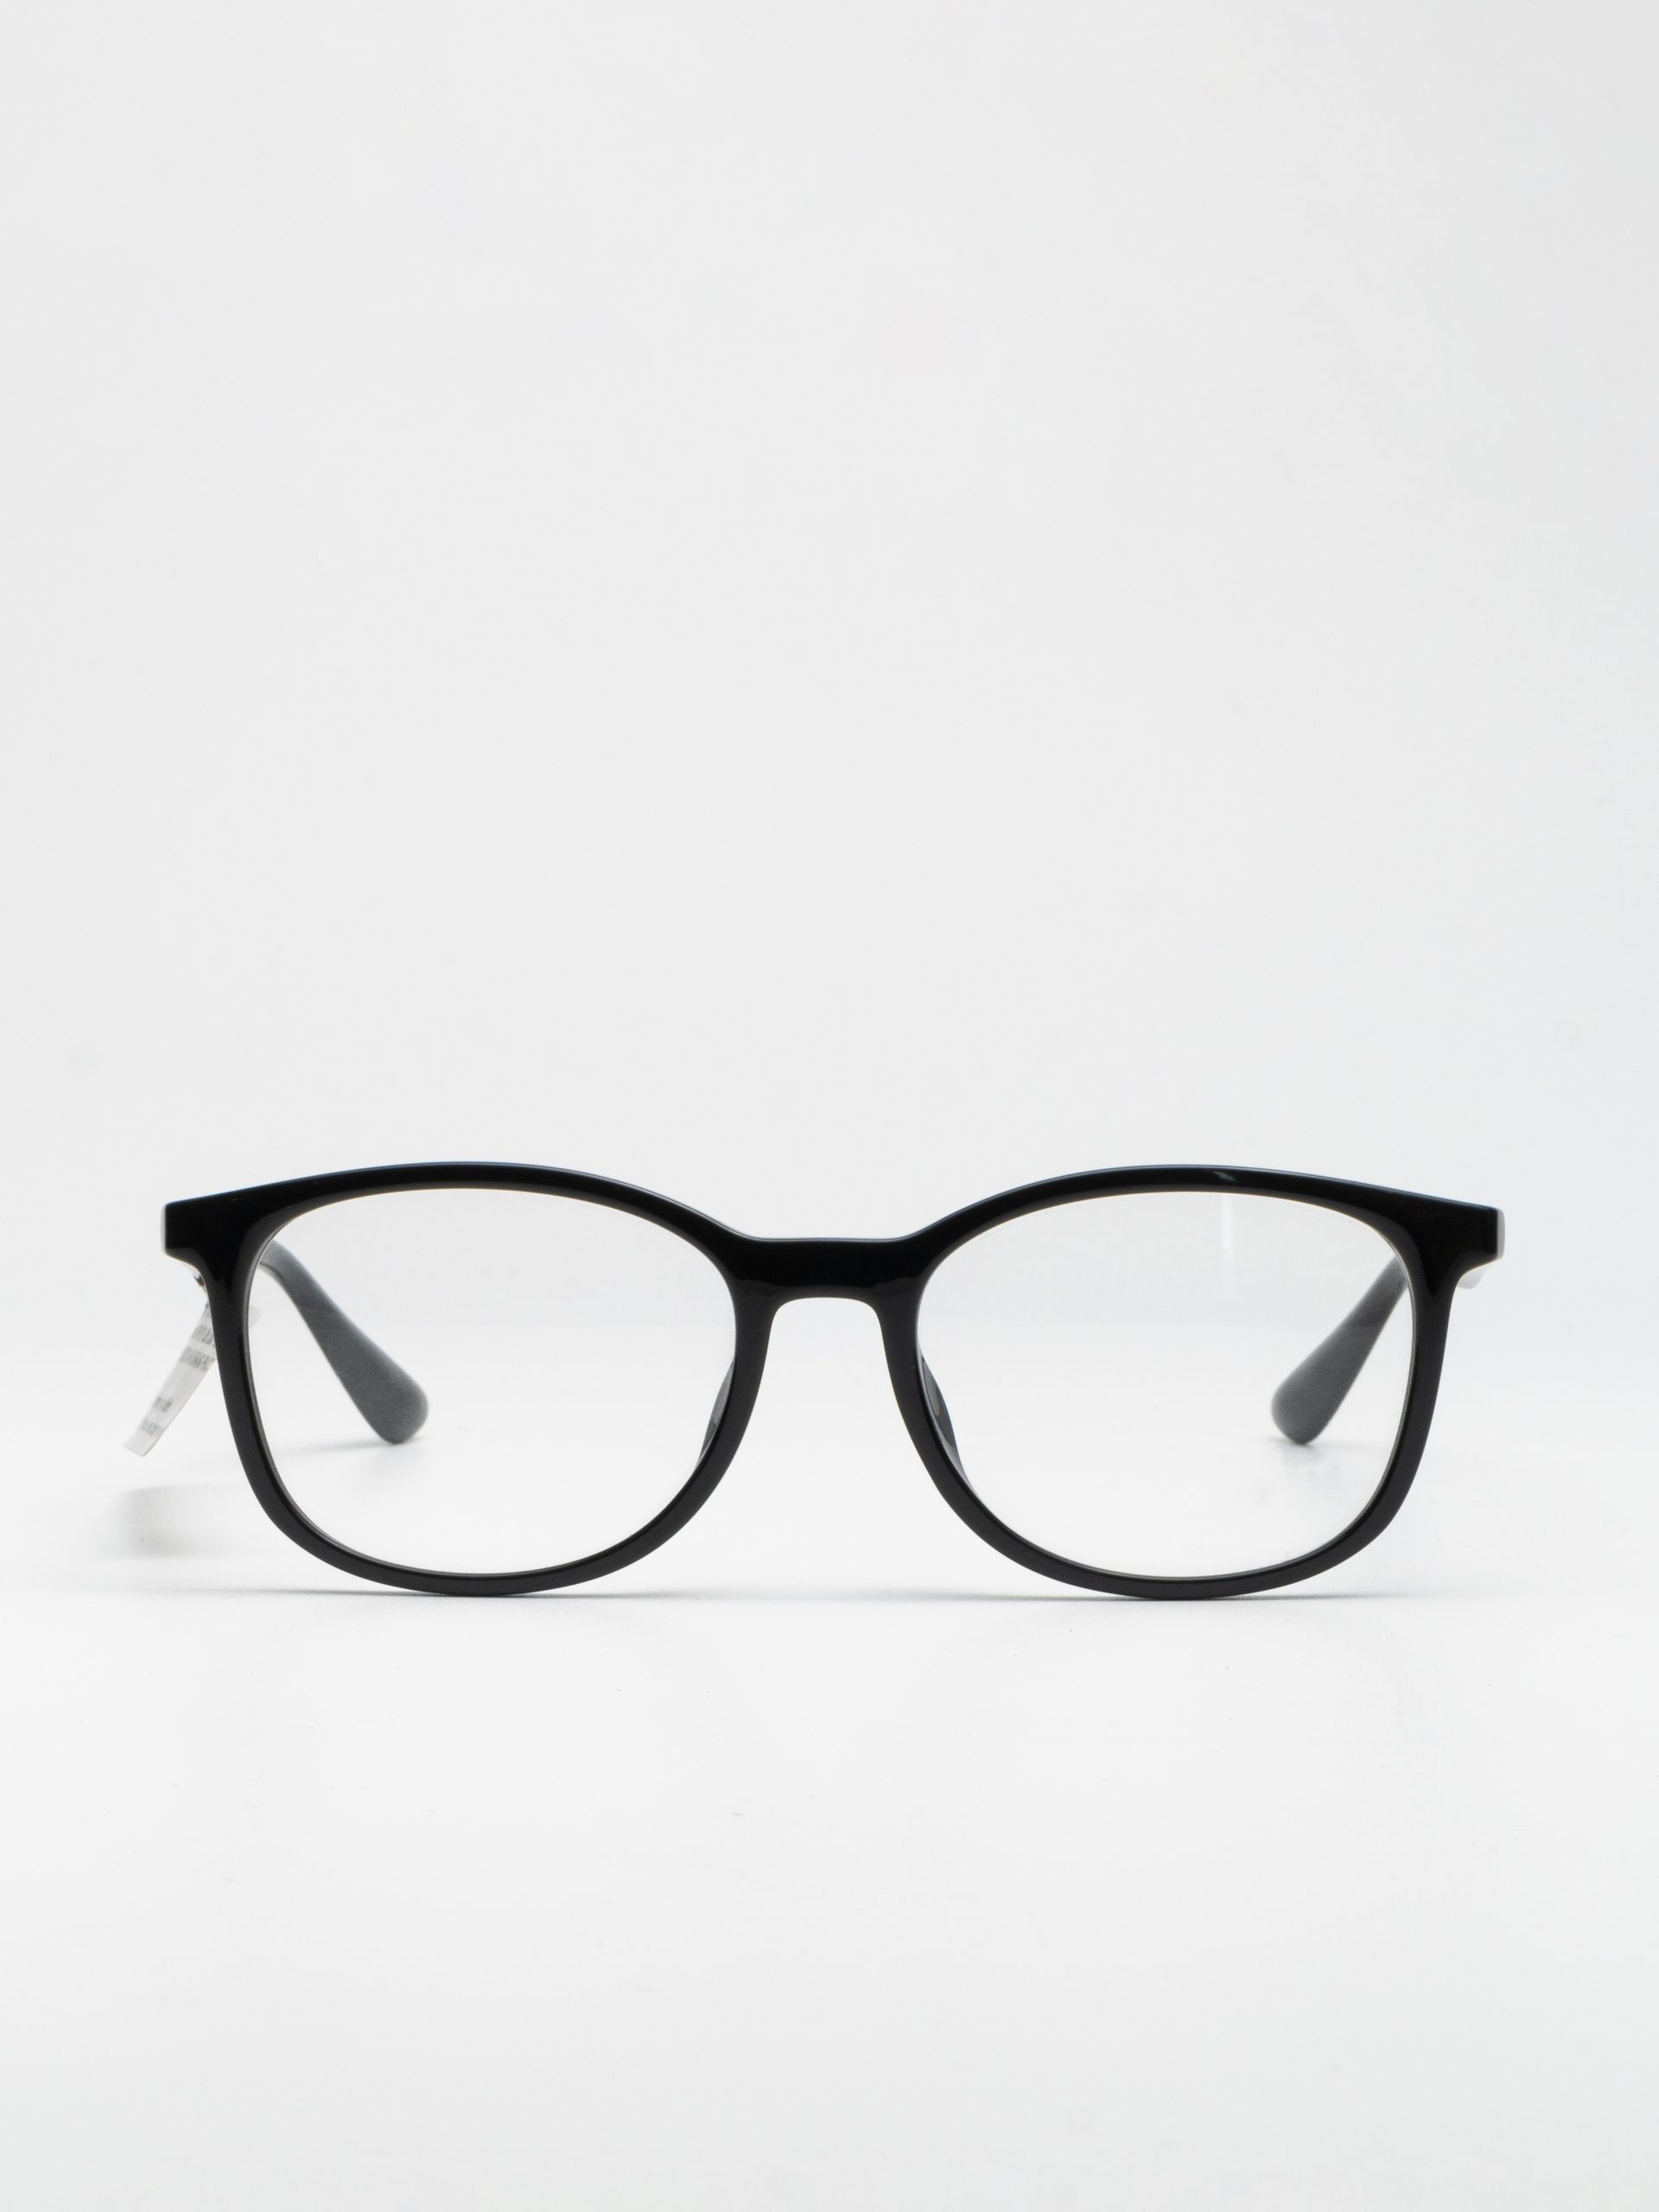 Gong kinh RAYBAN 7093D 2000 scaled